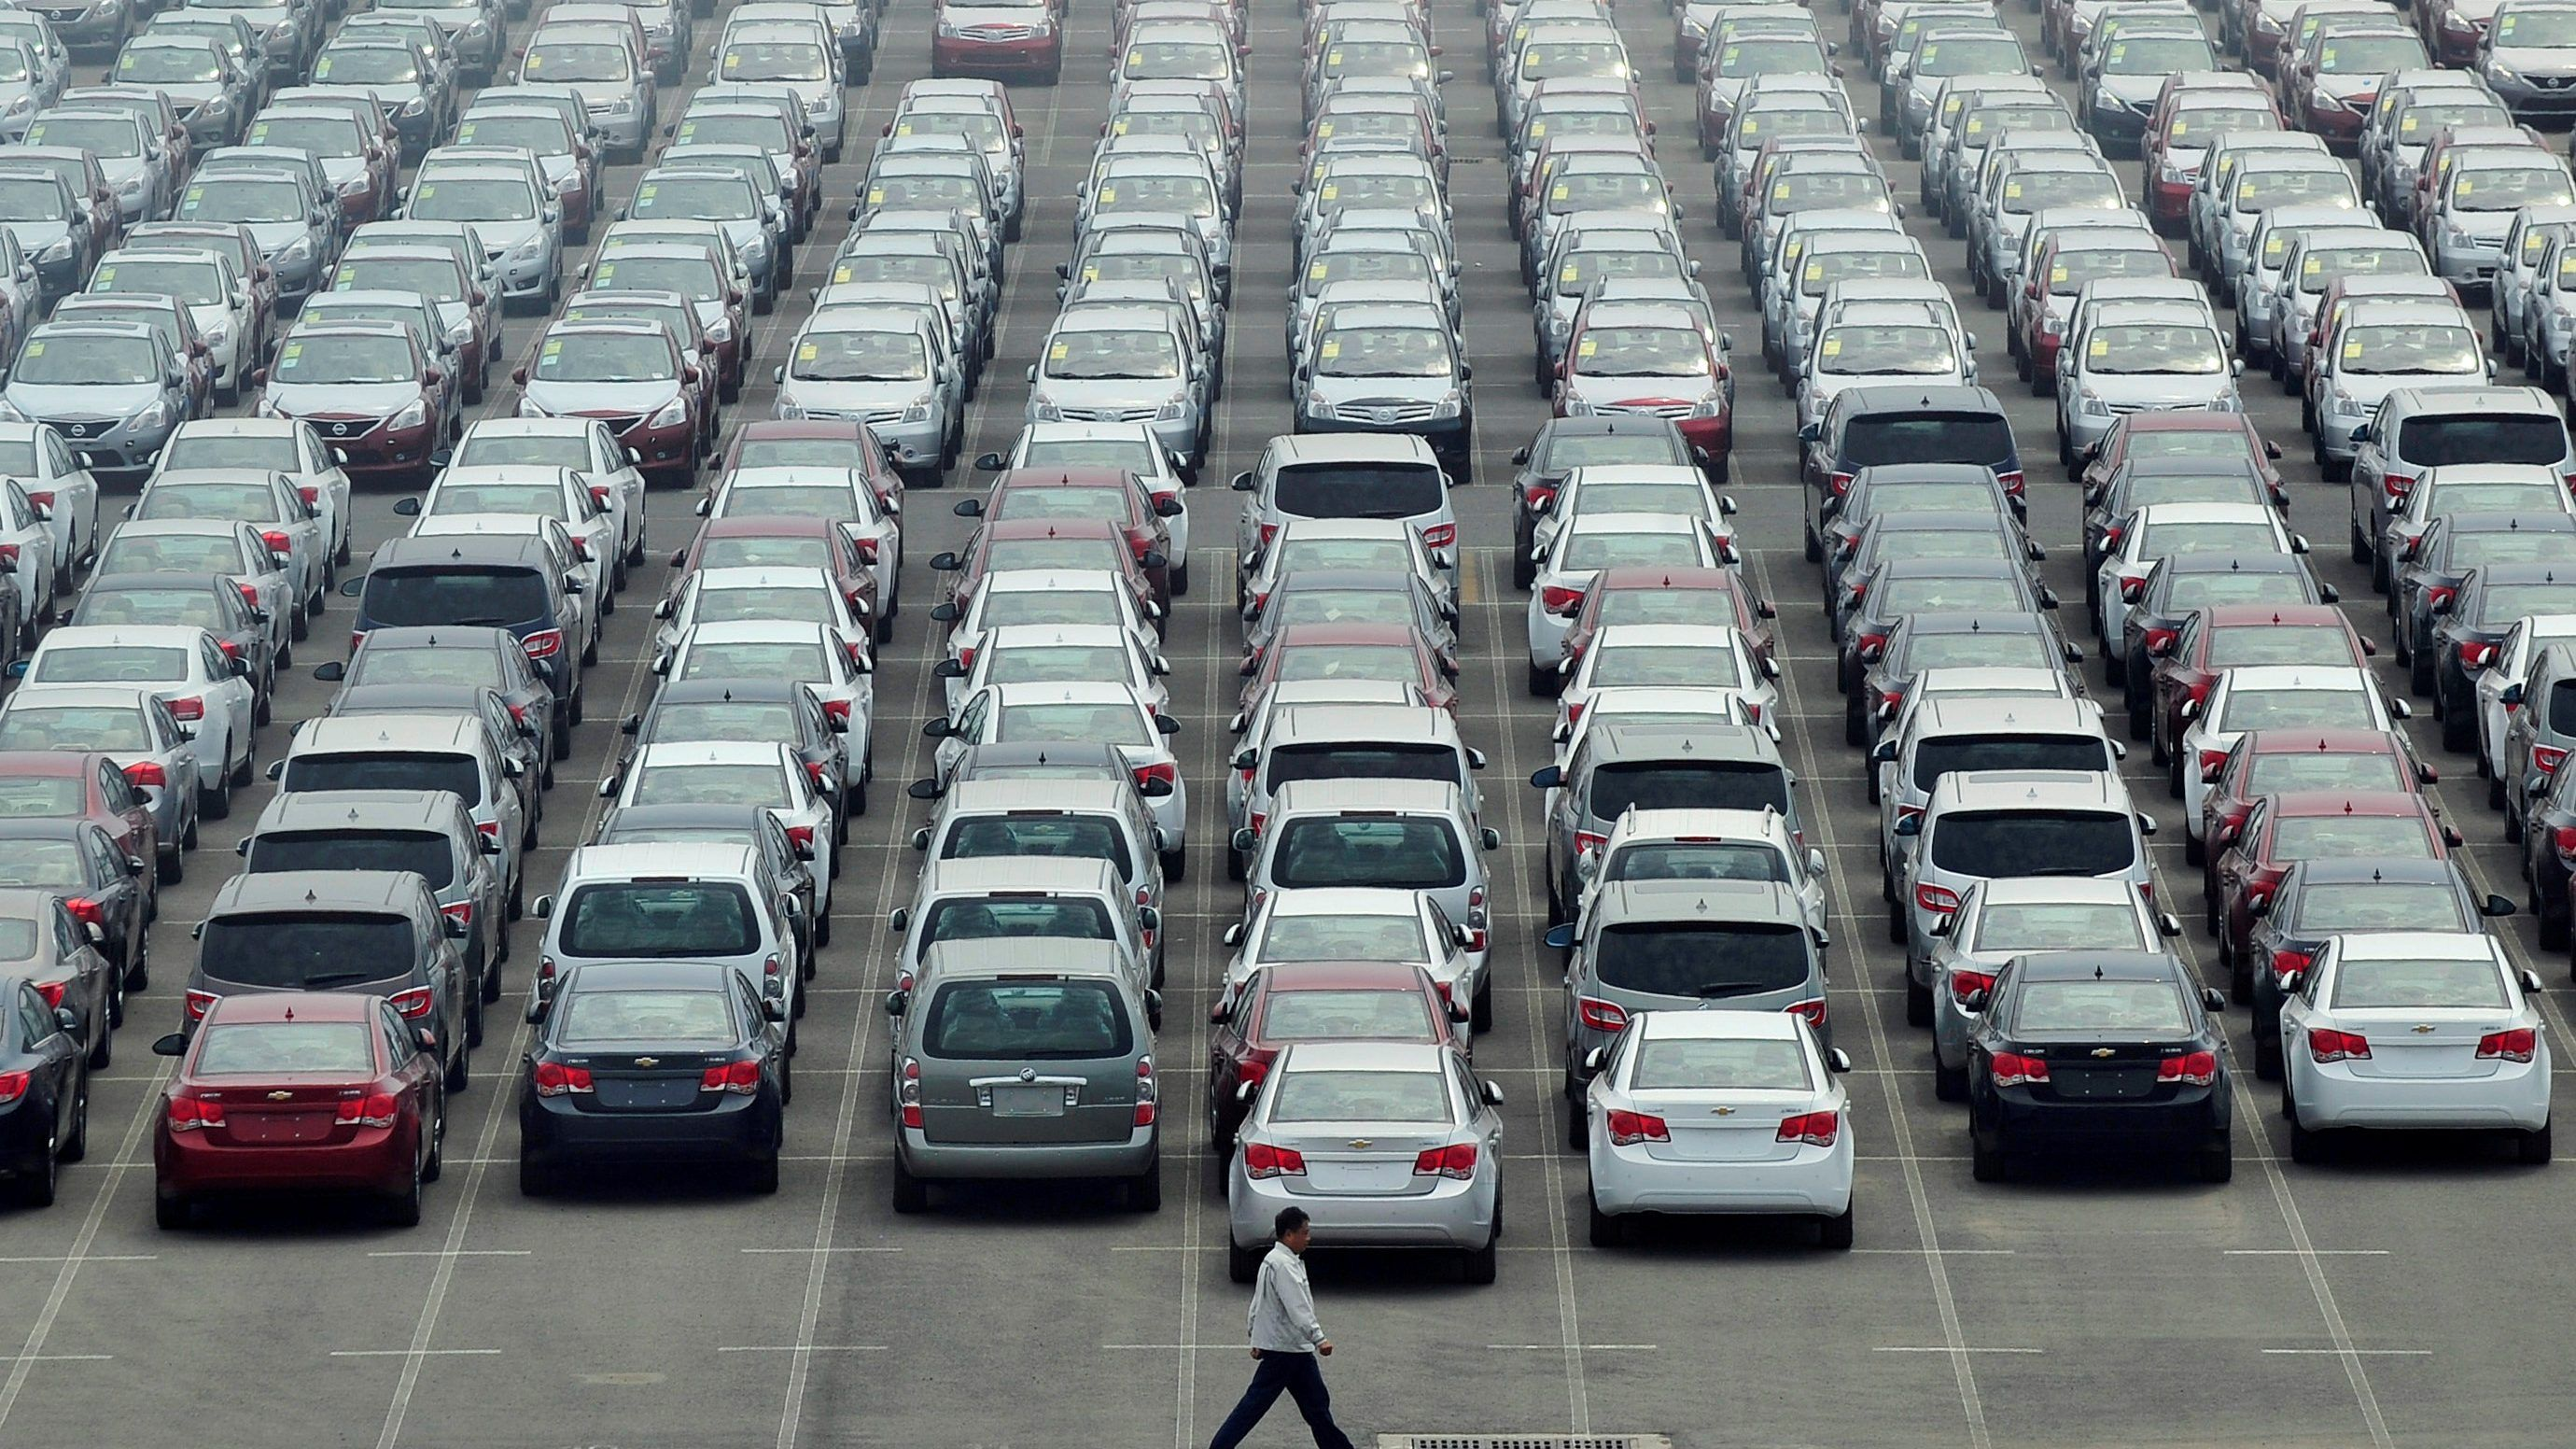 A parking spot sold in Hong Kong for nearly $700,000, but it might ...